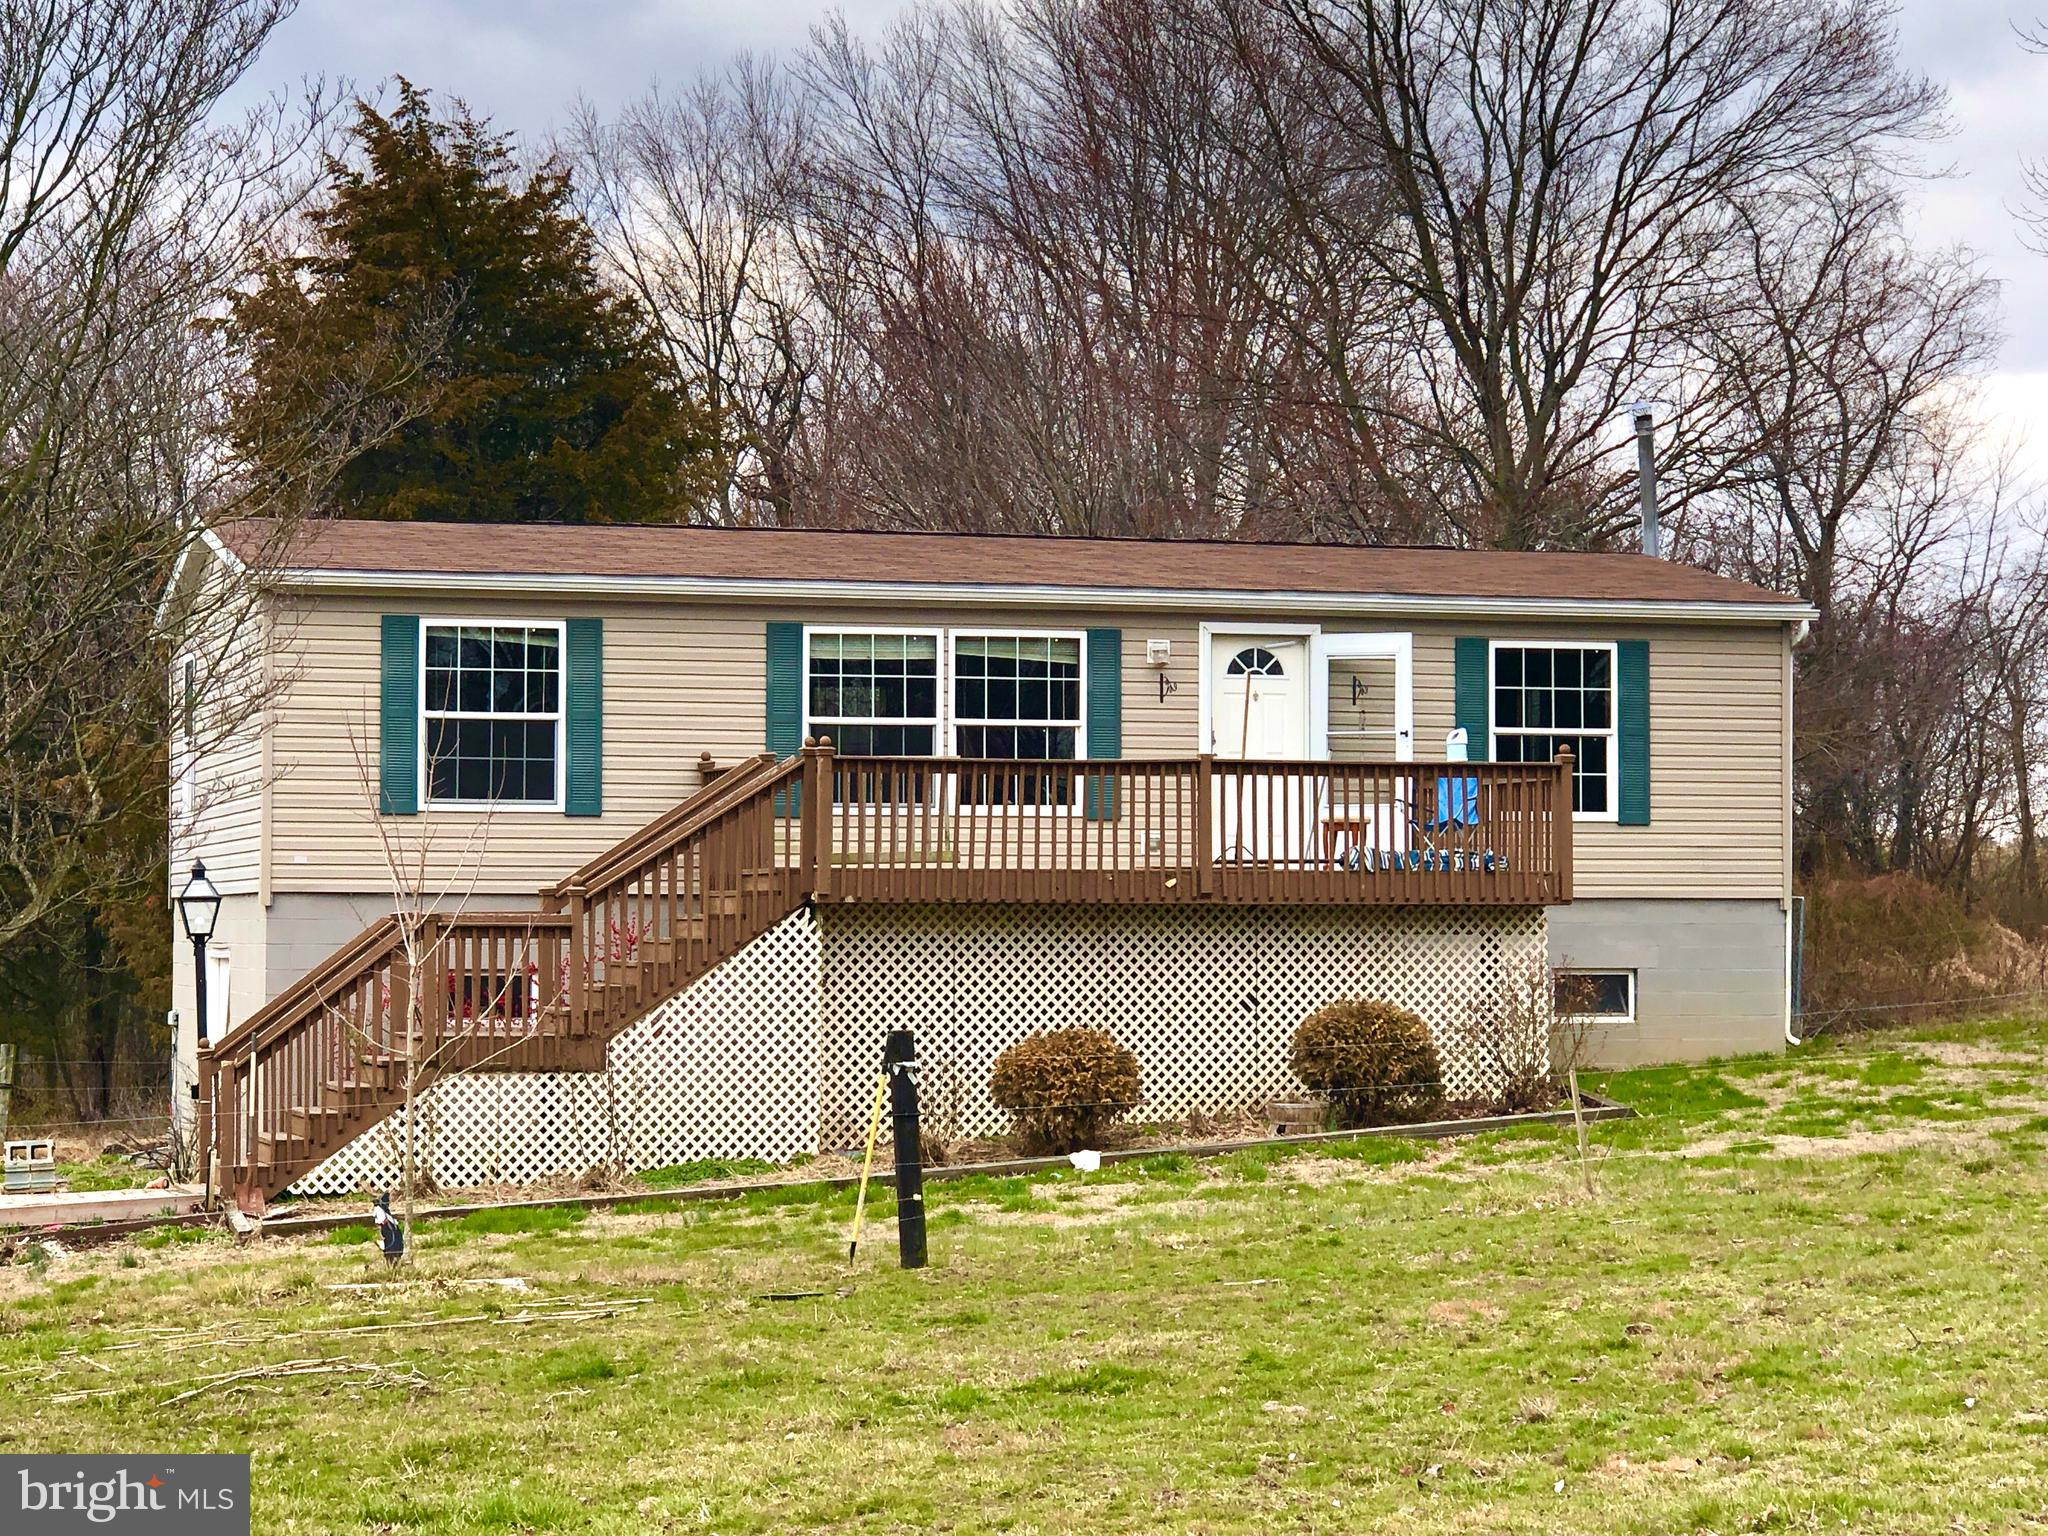 2462 ROBERT FULTON HIGHWAY, PEACH BOTTOM, PA 17563